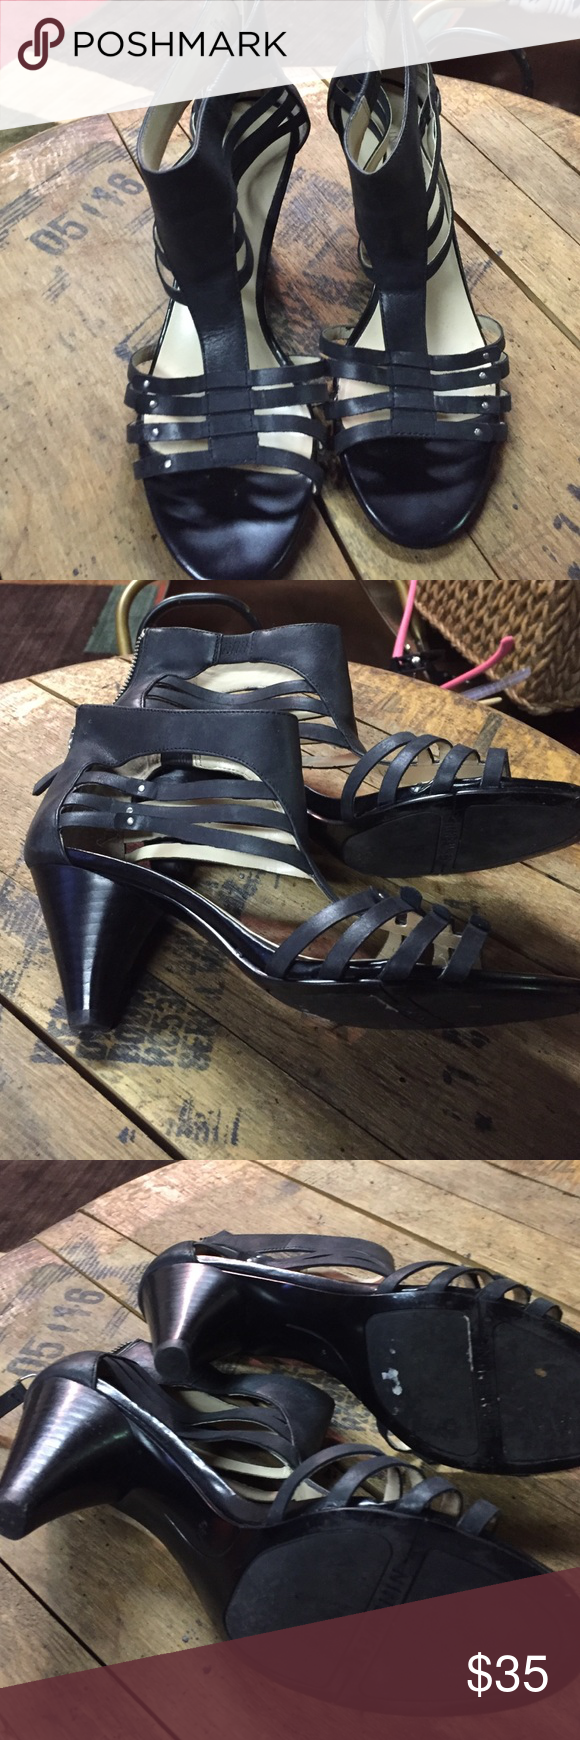 "Black leather sandal with 3"" heel Black leather sandals with stappy details and zipper back. Nine West Shoes"